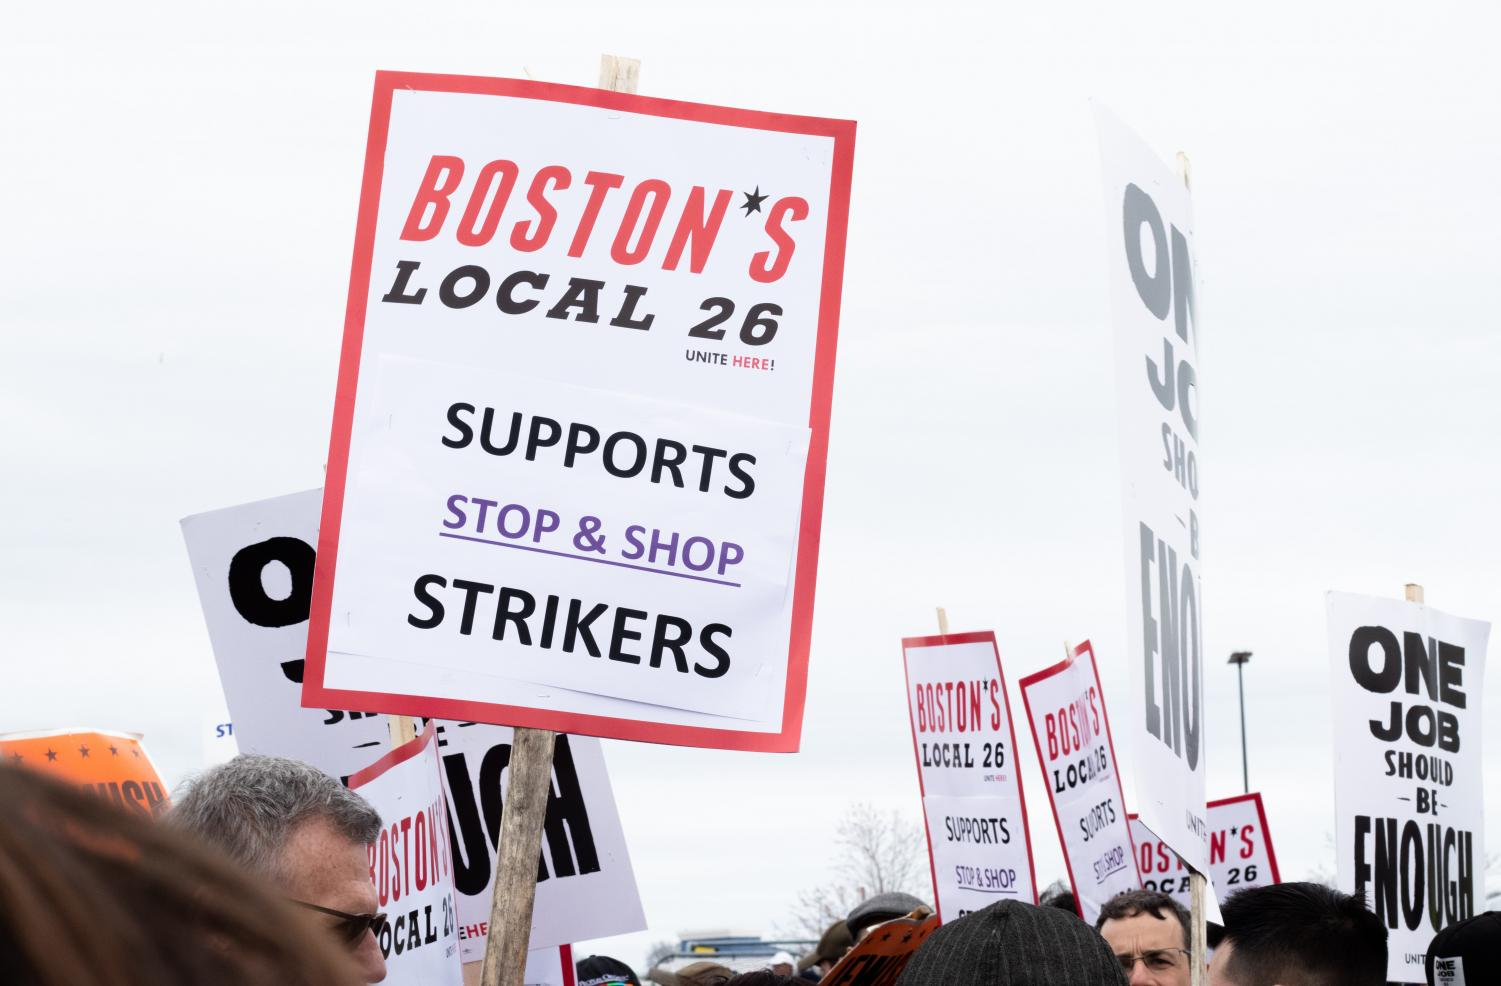 Boston%27s+Local+26+labor+union+marches+at+the+rally+to+support+the+Stop+%26+Shop+strikers.+